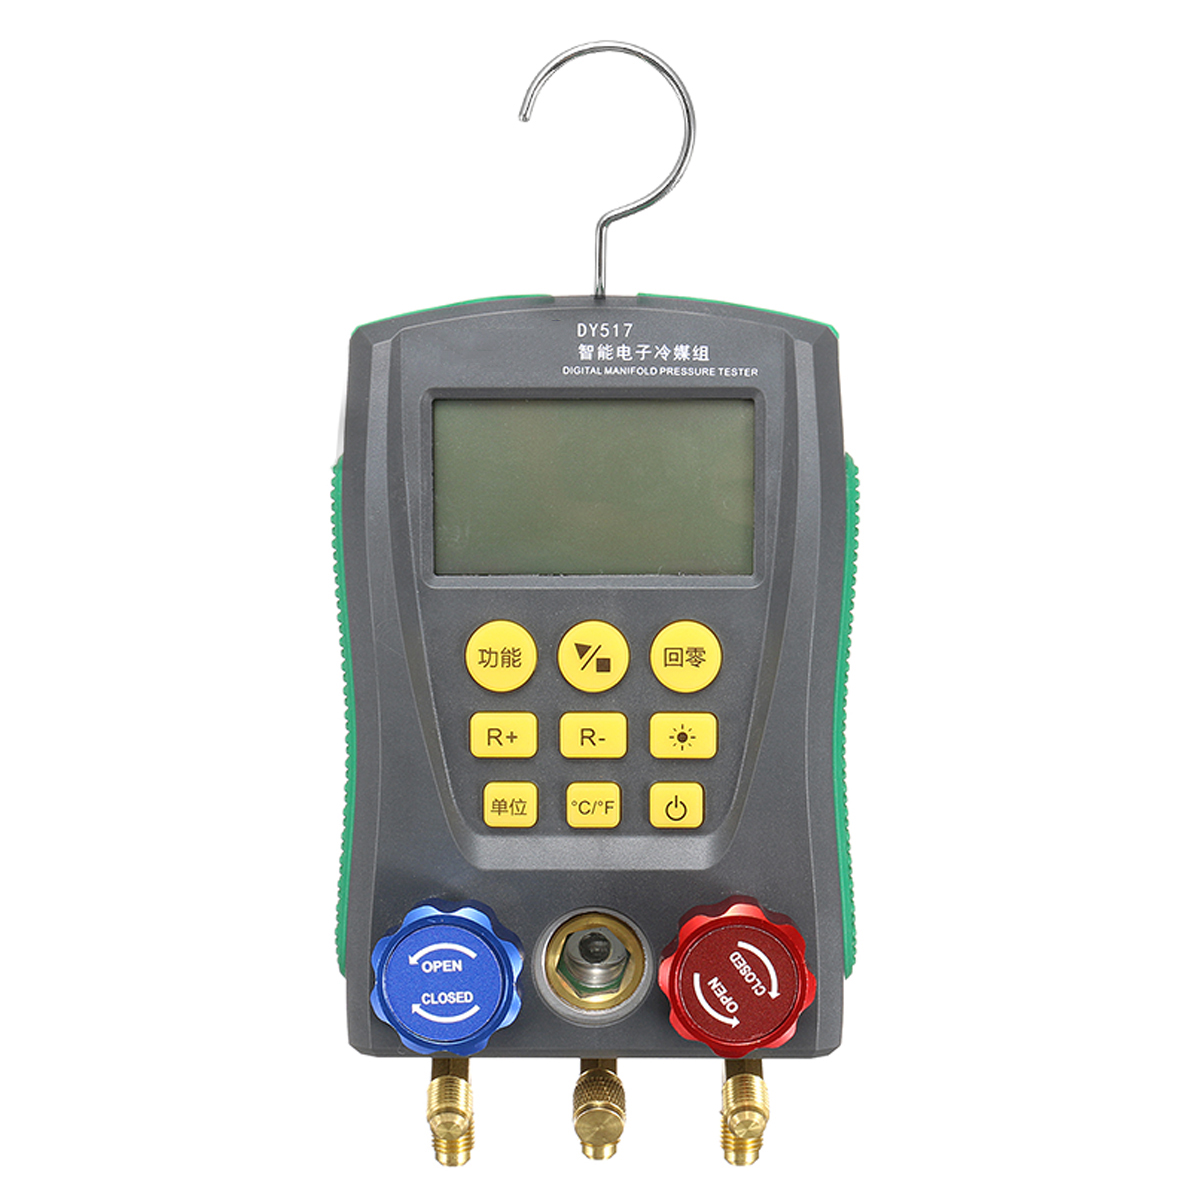 DY517 2-way Digital Manifold Gauge Refrigeration Pressure Tester with 3 Pipe